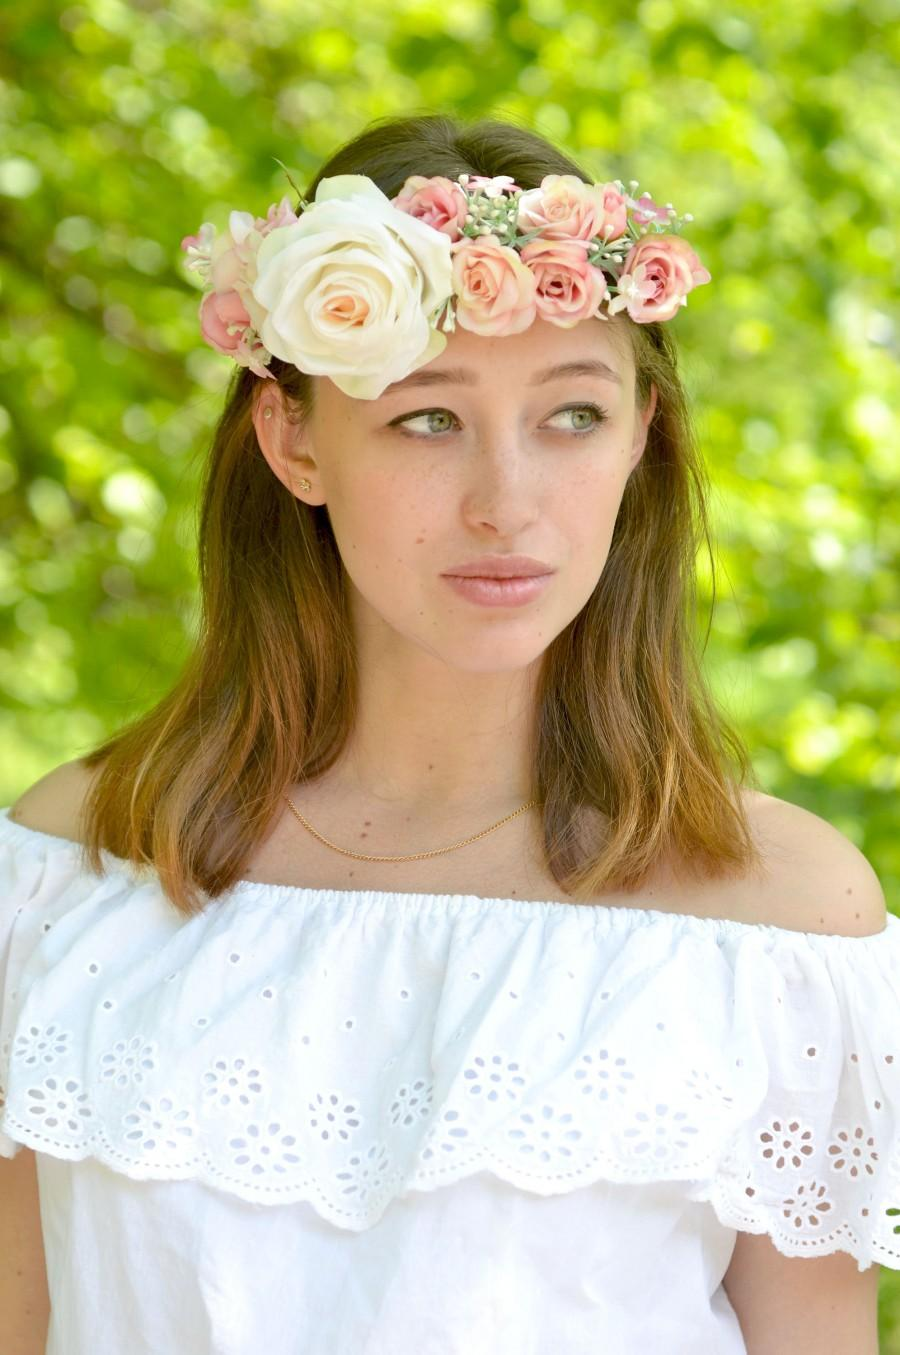 Wedding - Wedding flower crown peach pink rose hair bridal crown White floral head wreath roses halo wedding flowers Provence headband Bridal wreath - $45.00 USD